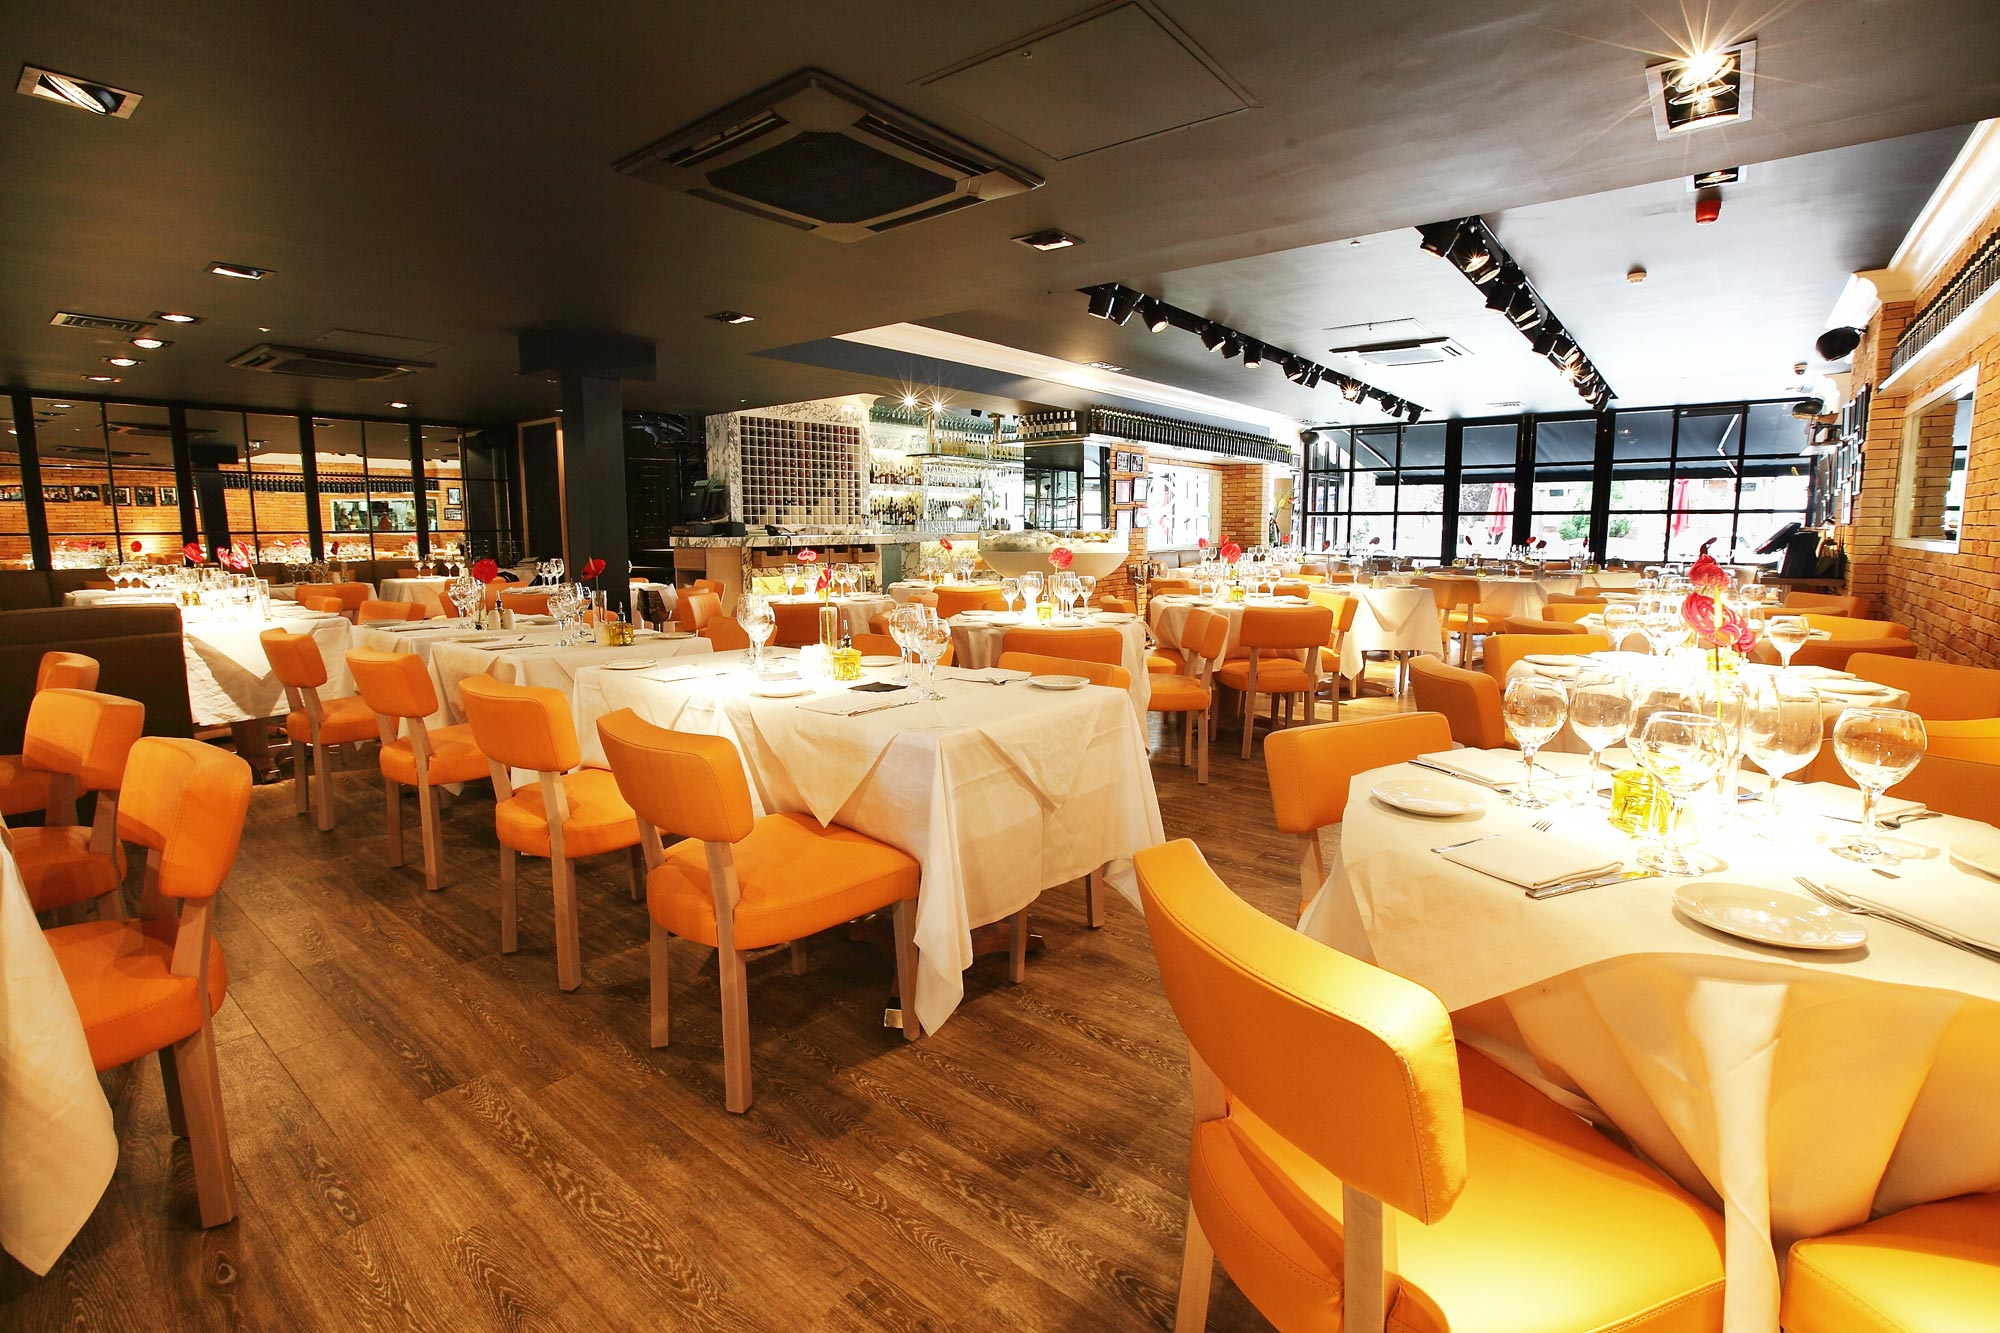 san carlo restaurants leeds flying pizza. Black Bedroom Furniture Sets. Home Design Ideas